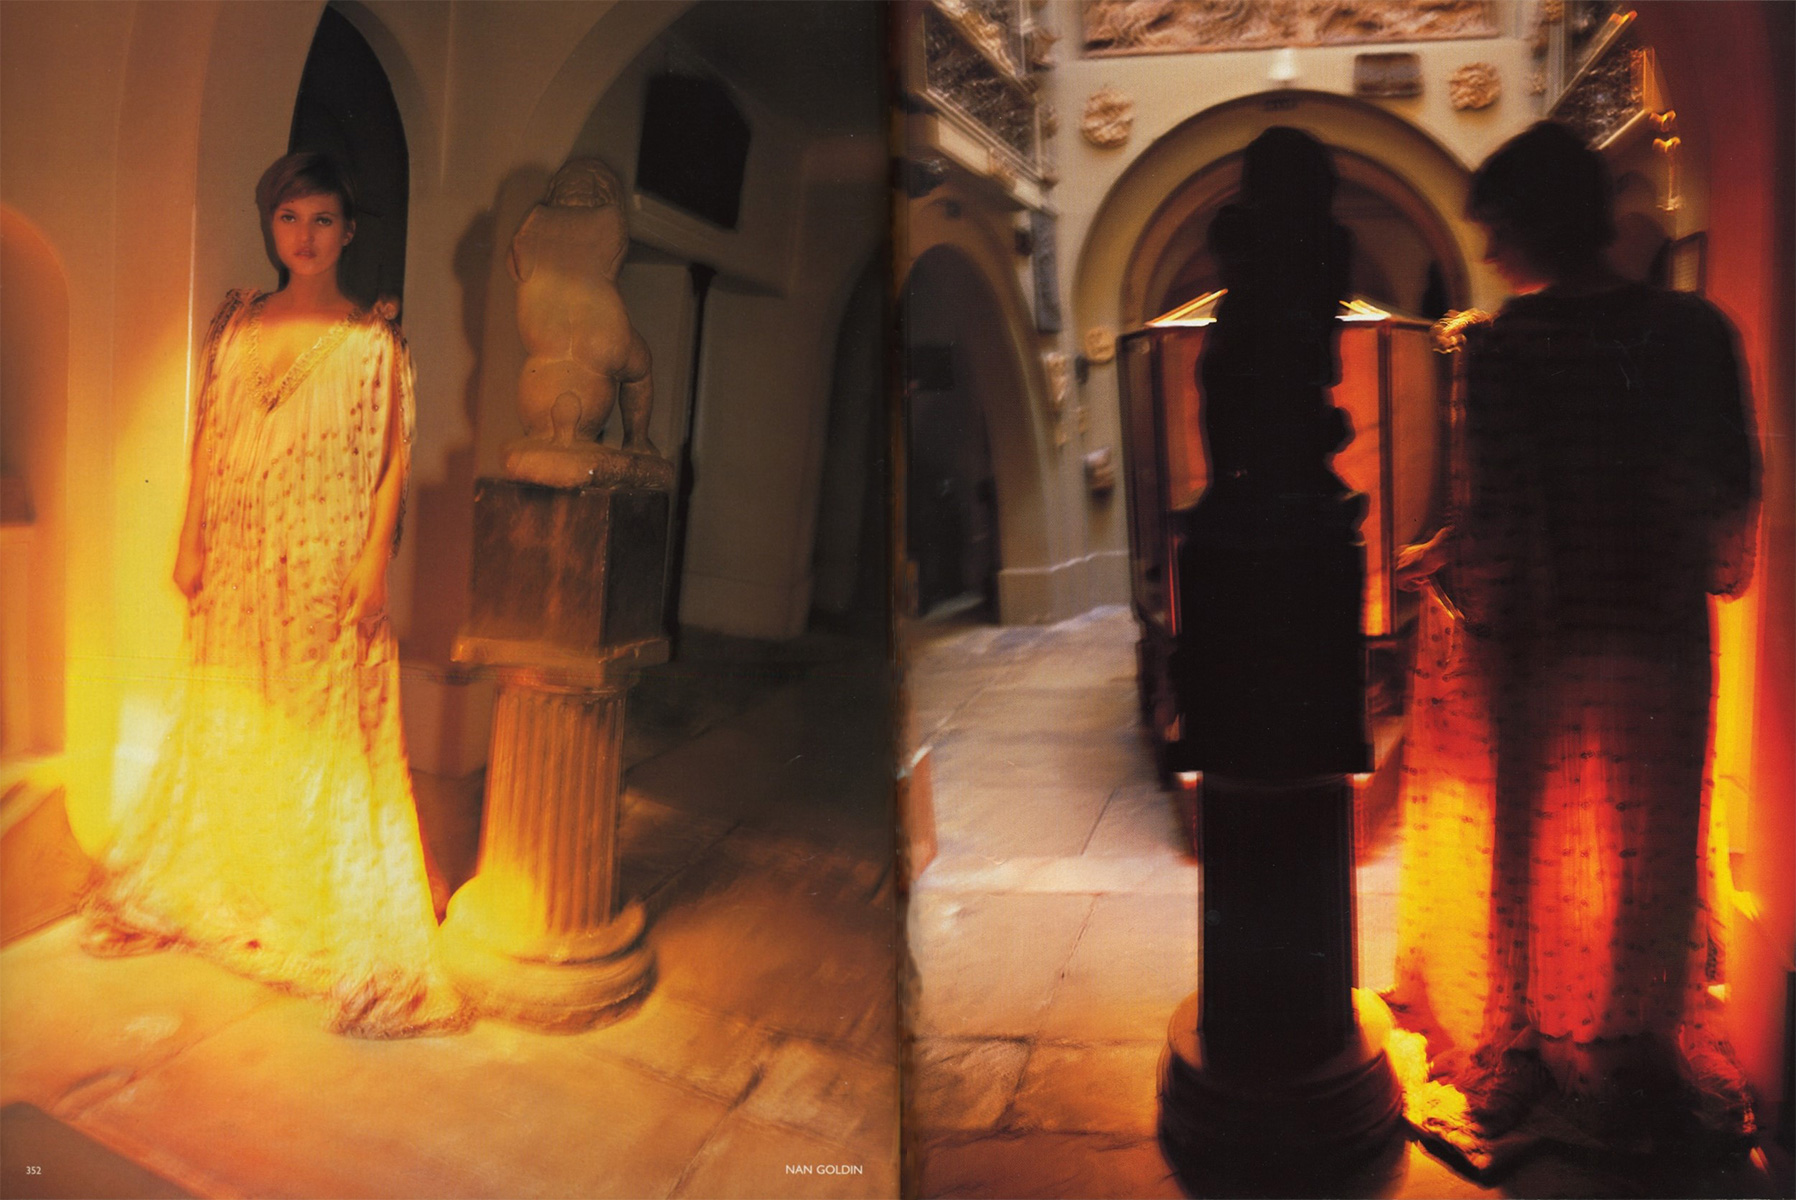 kate moss photography nan goldin fashion editoe stella mccartney vogue october 2001 5